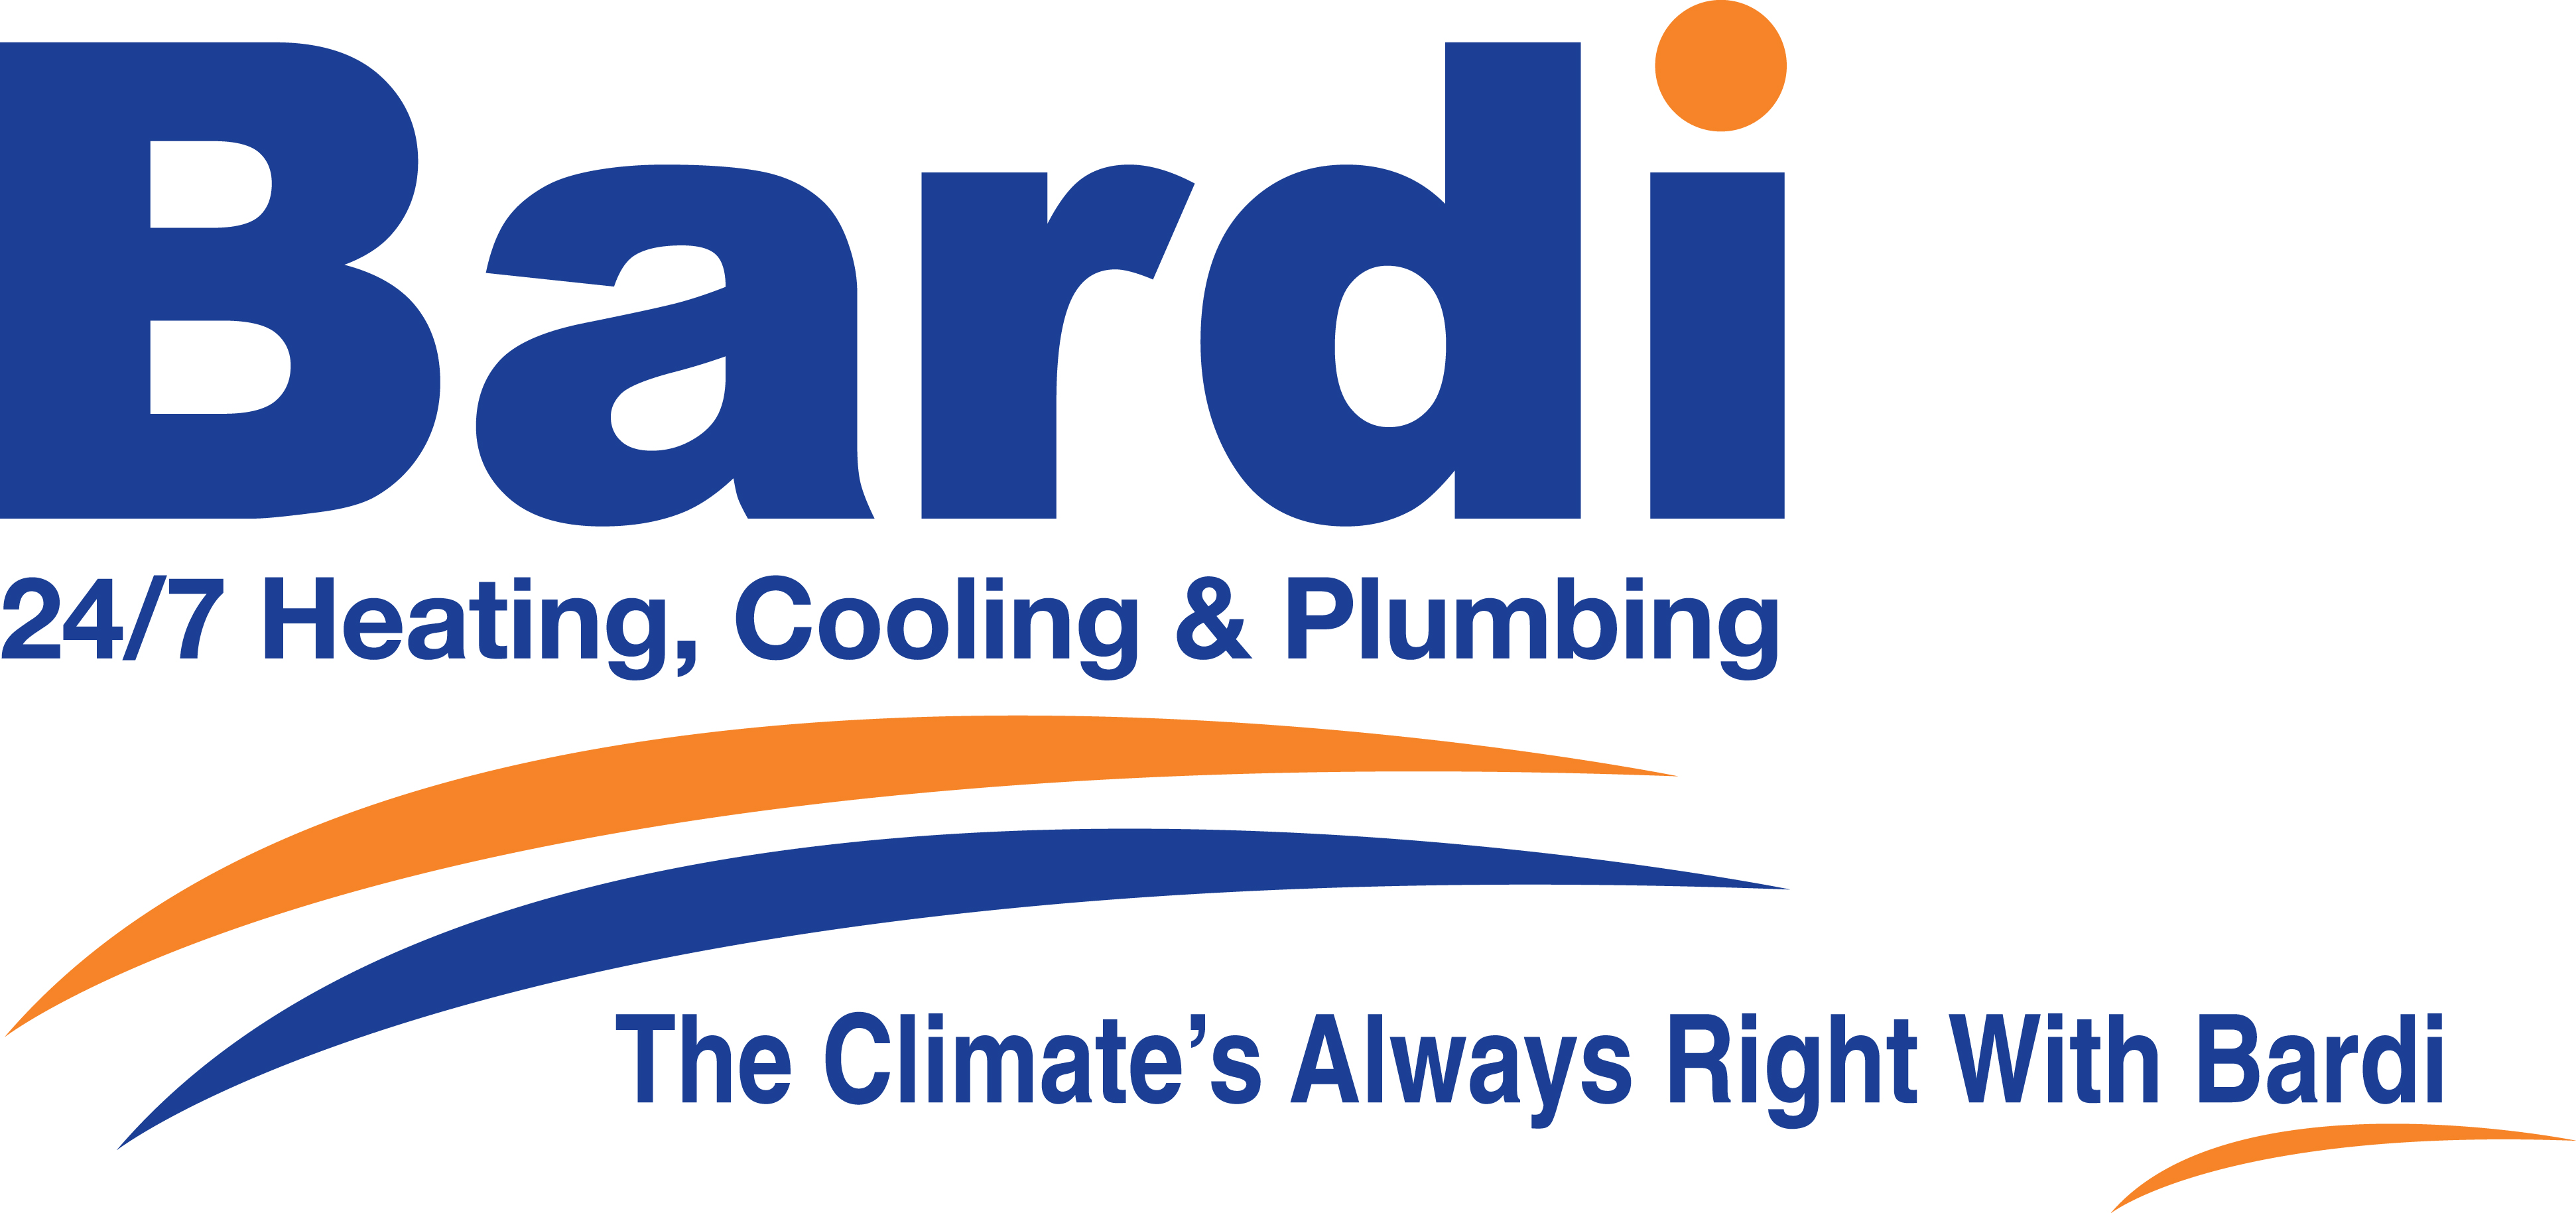 Bardi Heating Cooling And Plumbing Launches Contest To Find The Oldest Working Air Conditioner In Atlanta